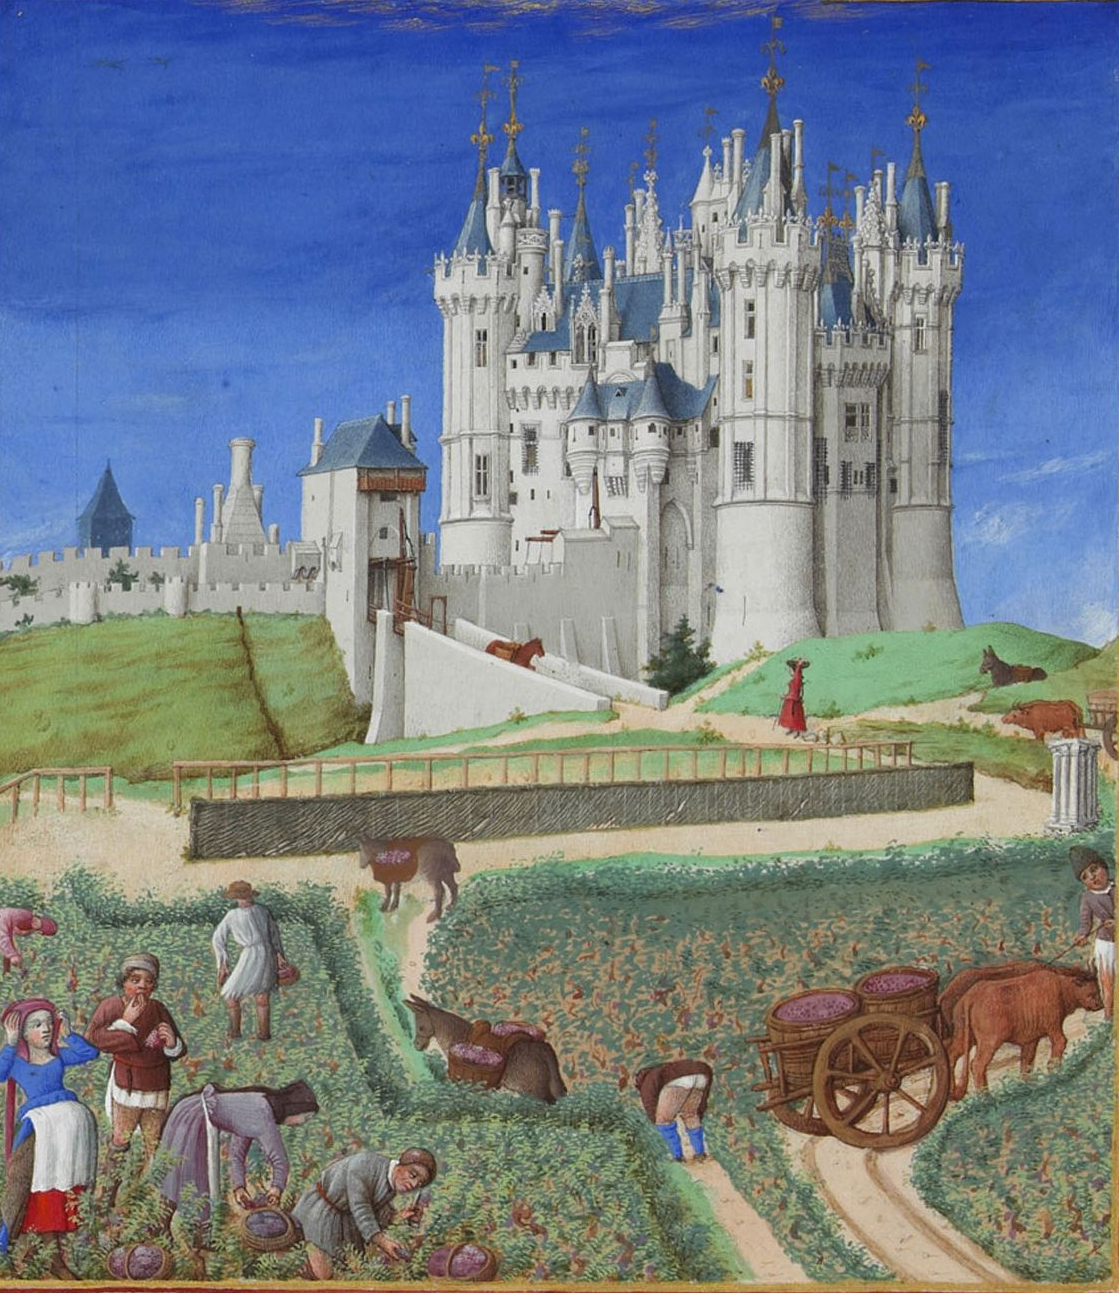 A castle stands above a vineyard of workers picking grapes